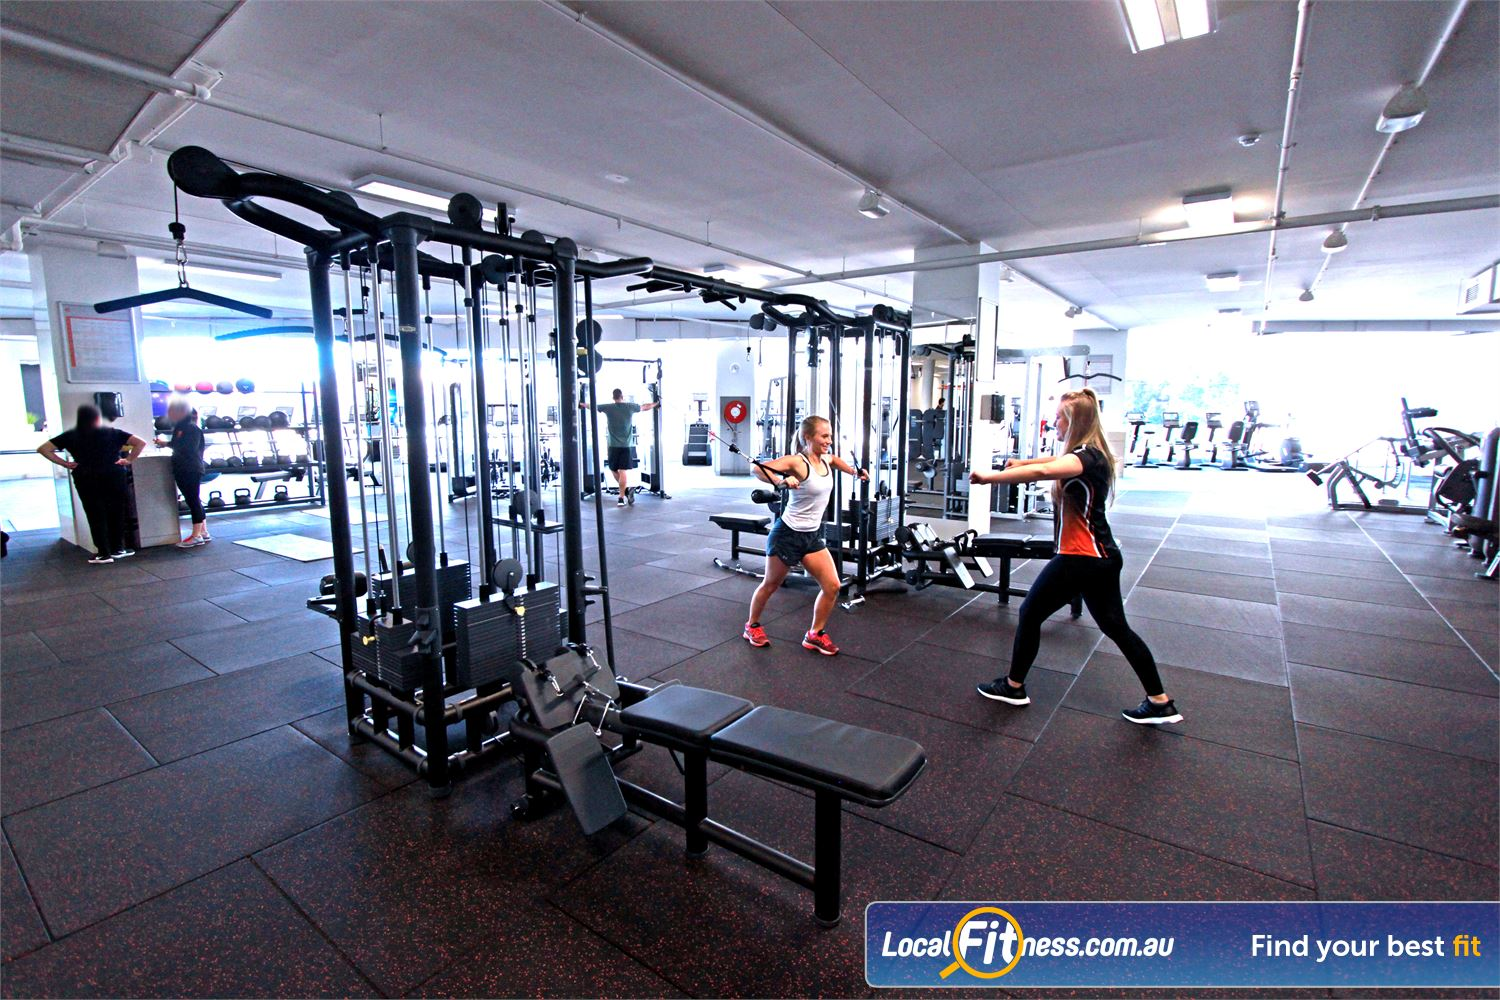 South Pacific Health Clubs Near Mordialloc The spacious and premium Menton gym is open 24 hours.